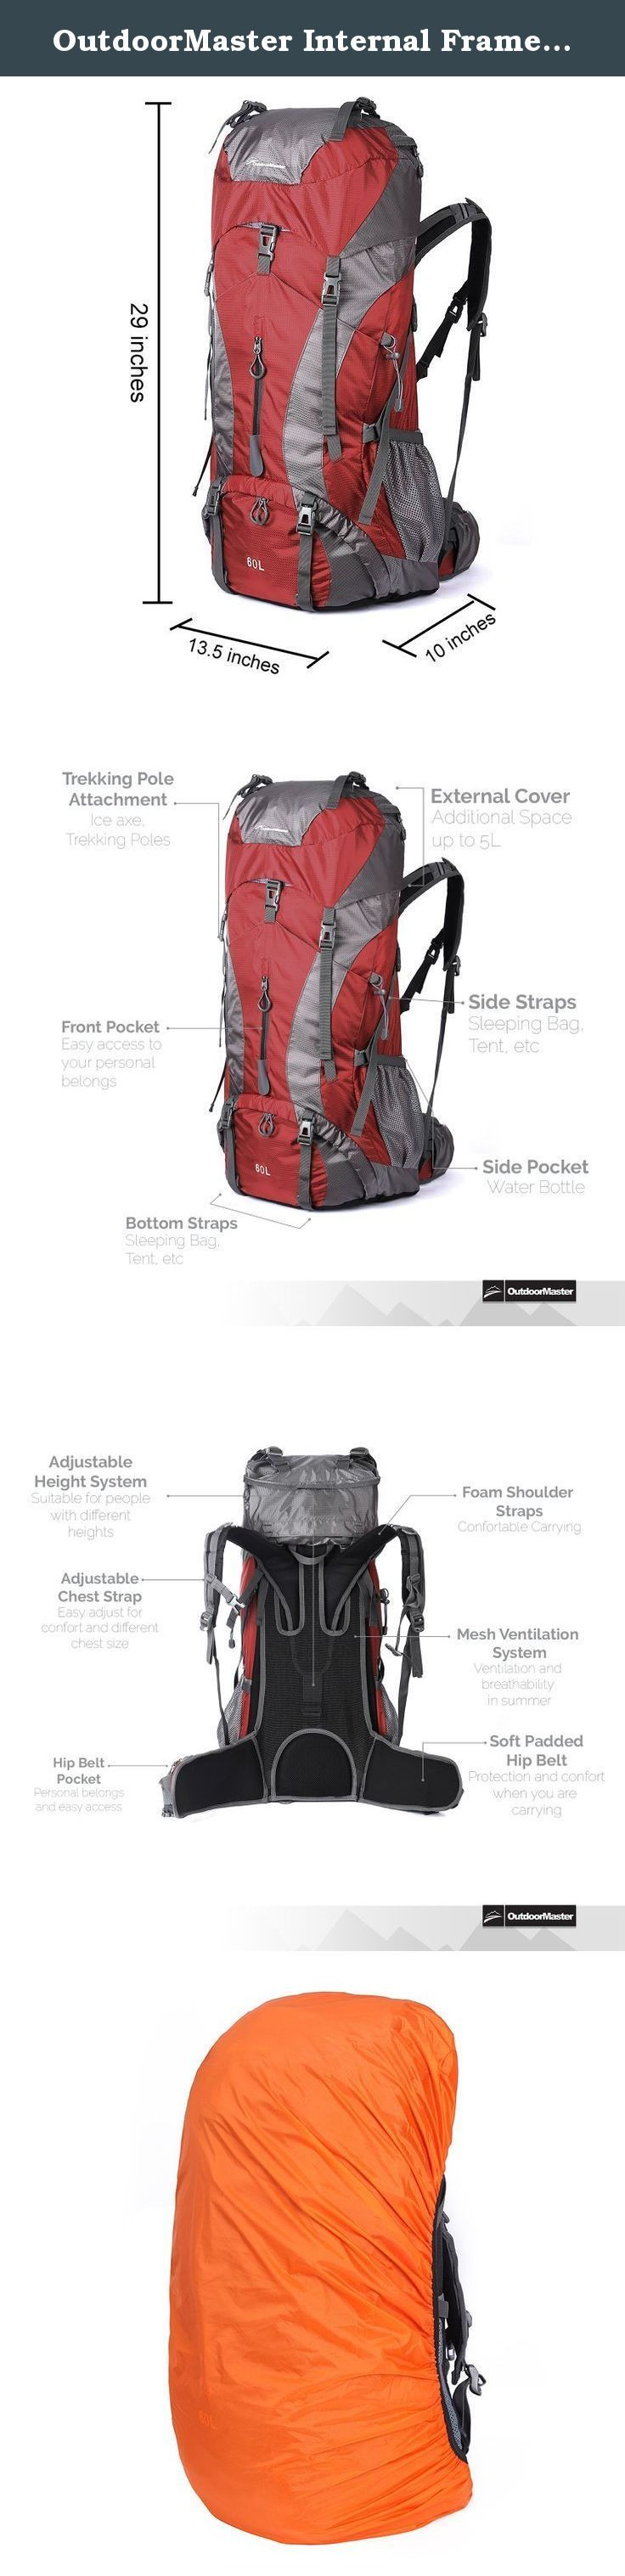 OutdoorMaster Internal Frame Hiking Backpack 60L with Waterproof Cover (Red). Very Spacious Hiking Backpack The Outdoormaster 60L is a spacious 60L backpack for outdoor sports and hiking. This bag can easily hold all your hiking essentials when you're in the outdoors. Internal Frame The internal frame consists out of 2 aluminum strips which disperse the weight equally over your shoulders and hips. Adjustable Strap Height The OutdoorMaster 60L hiking backpack is equipped with an adjustable...